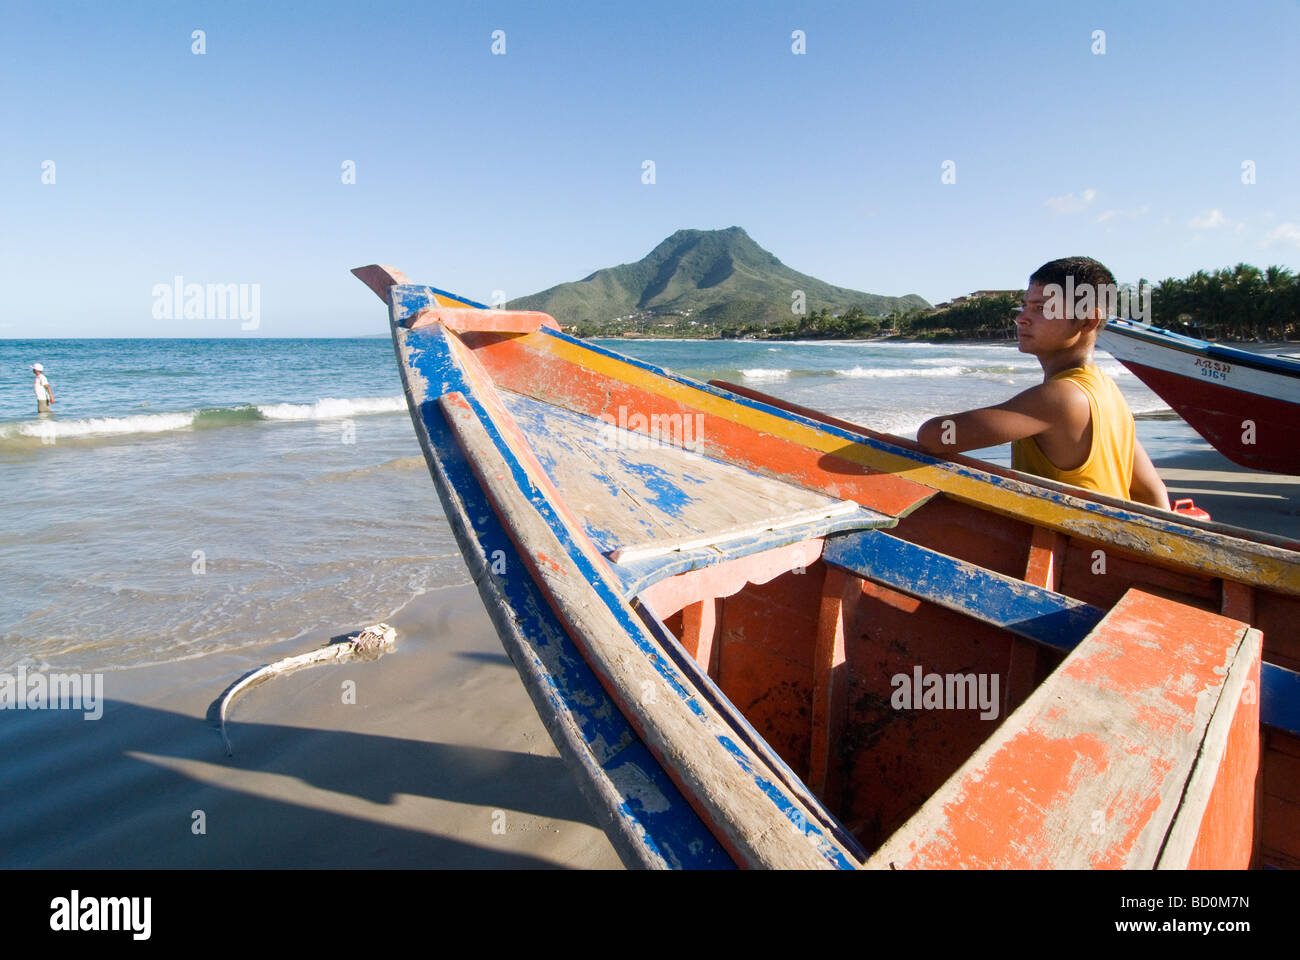 Boy beneath a fisherboat on the island Isla de Margarita, Venezuela. - Stock Image